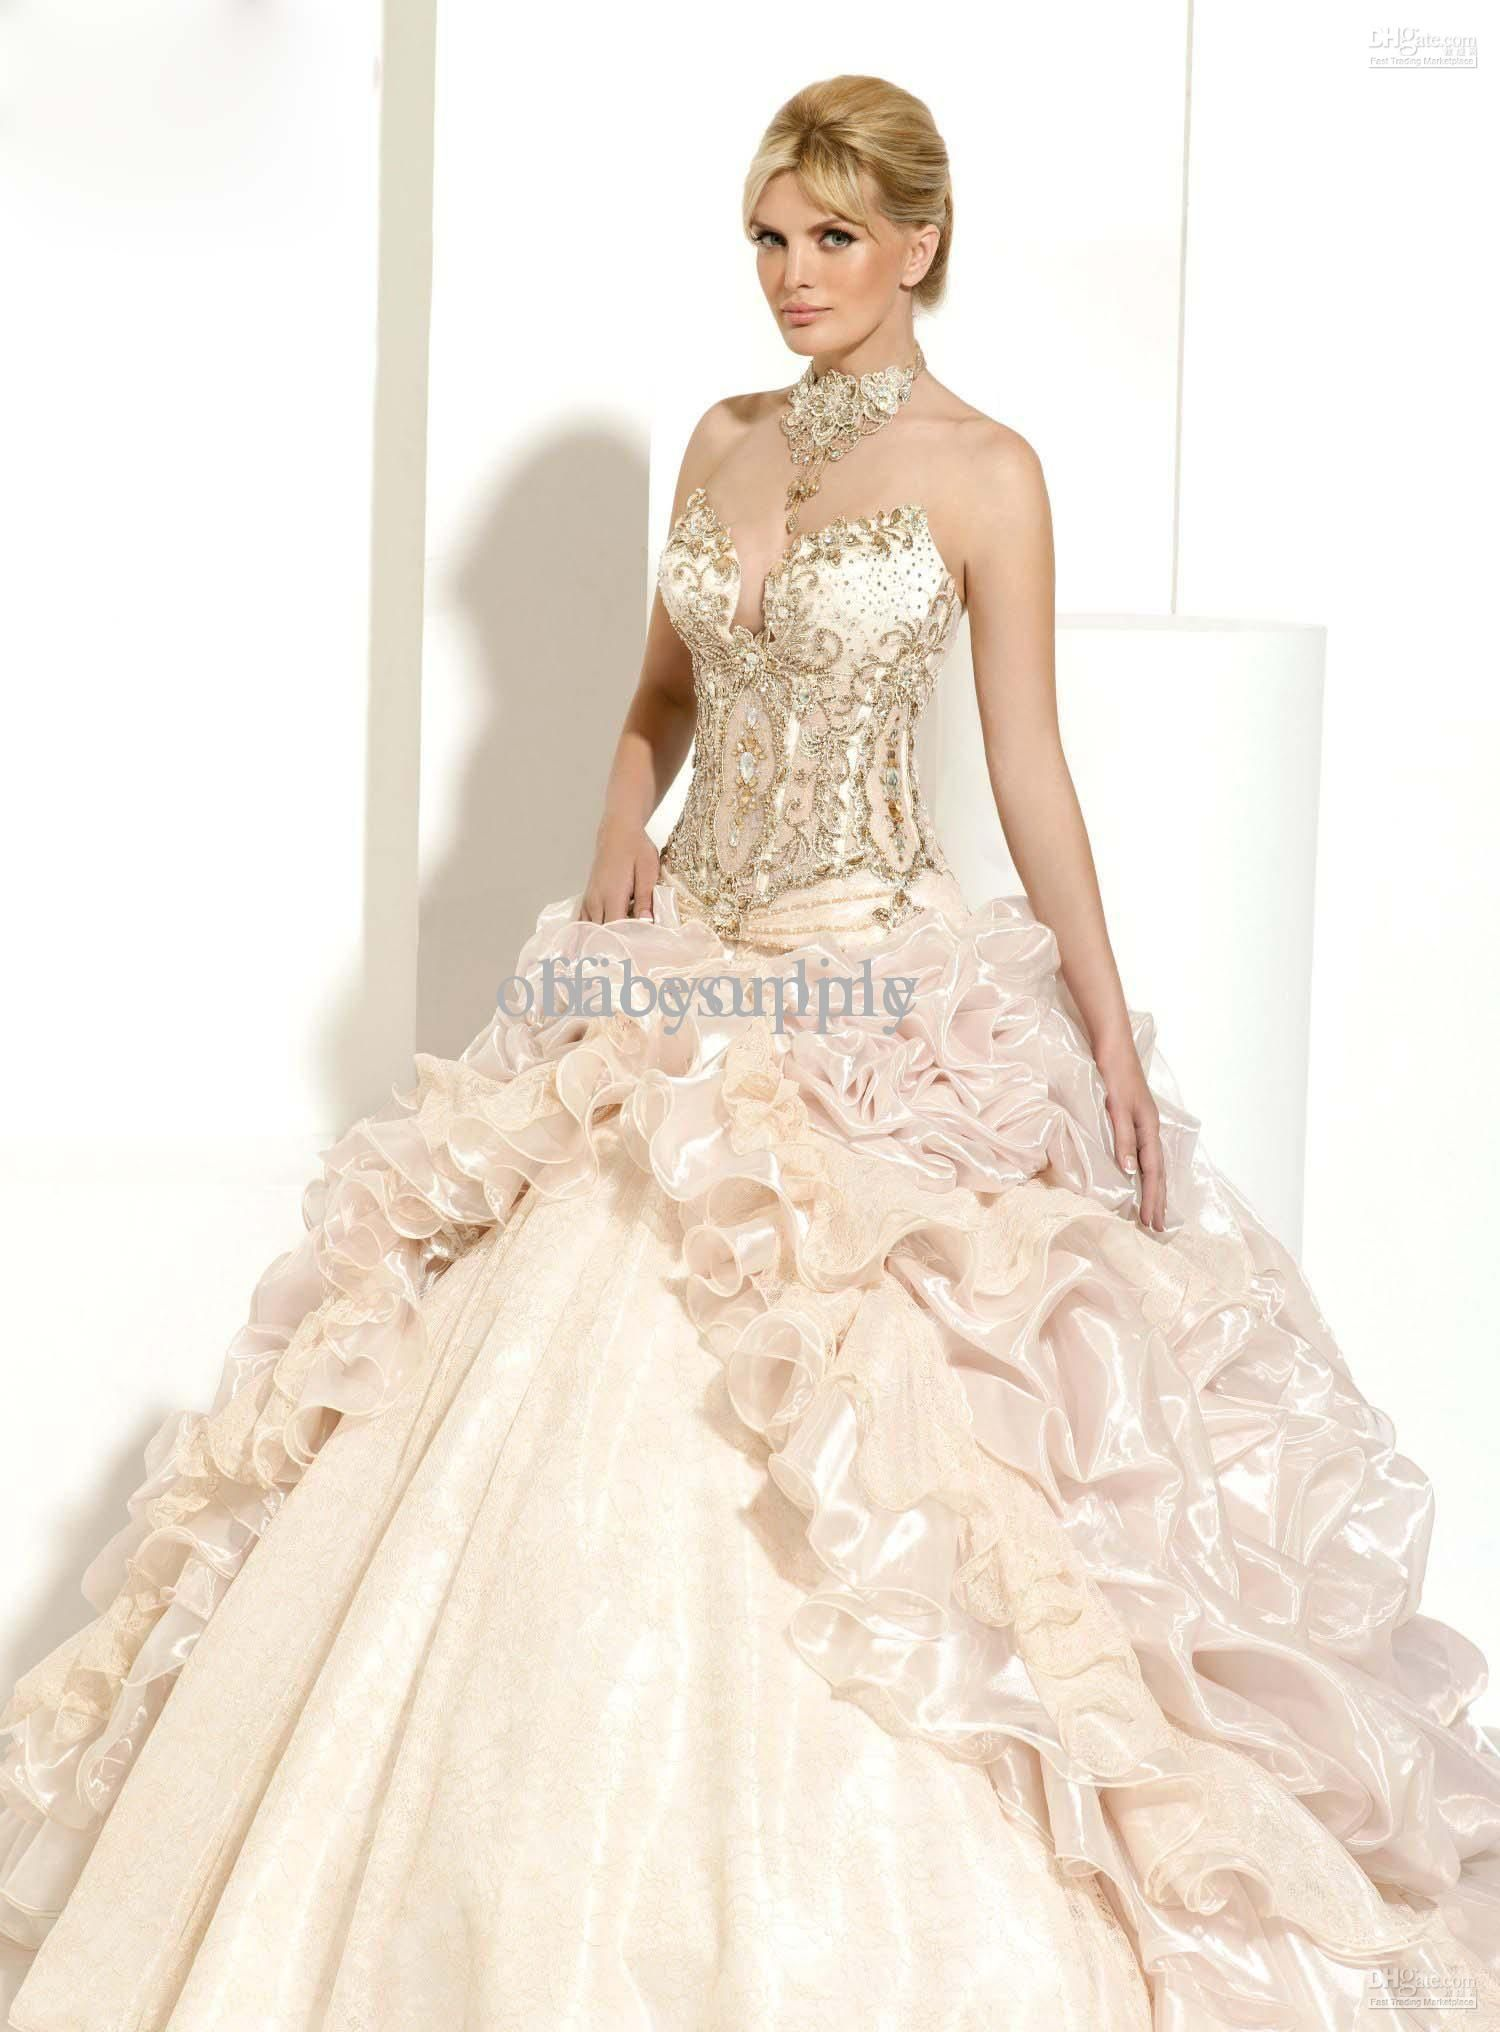 Whole 2017 Swarovski Crystals Organza Ball Gown Beach Wedding Dresses With Lace Up Back Cathedral Train